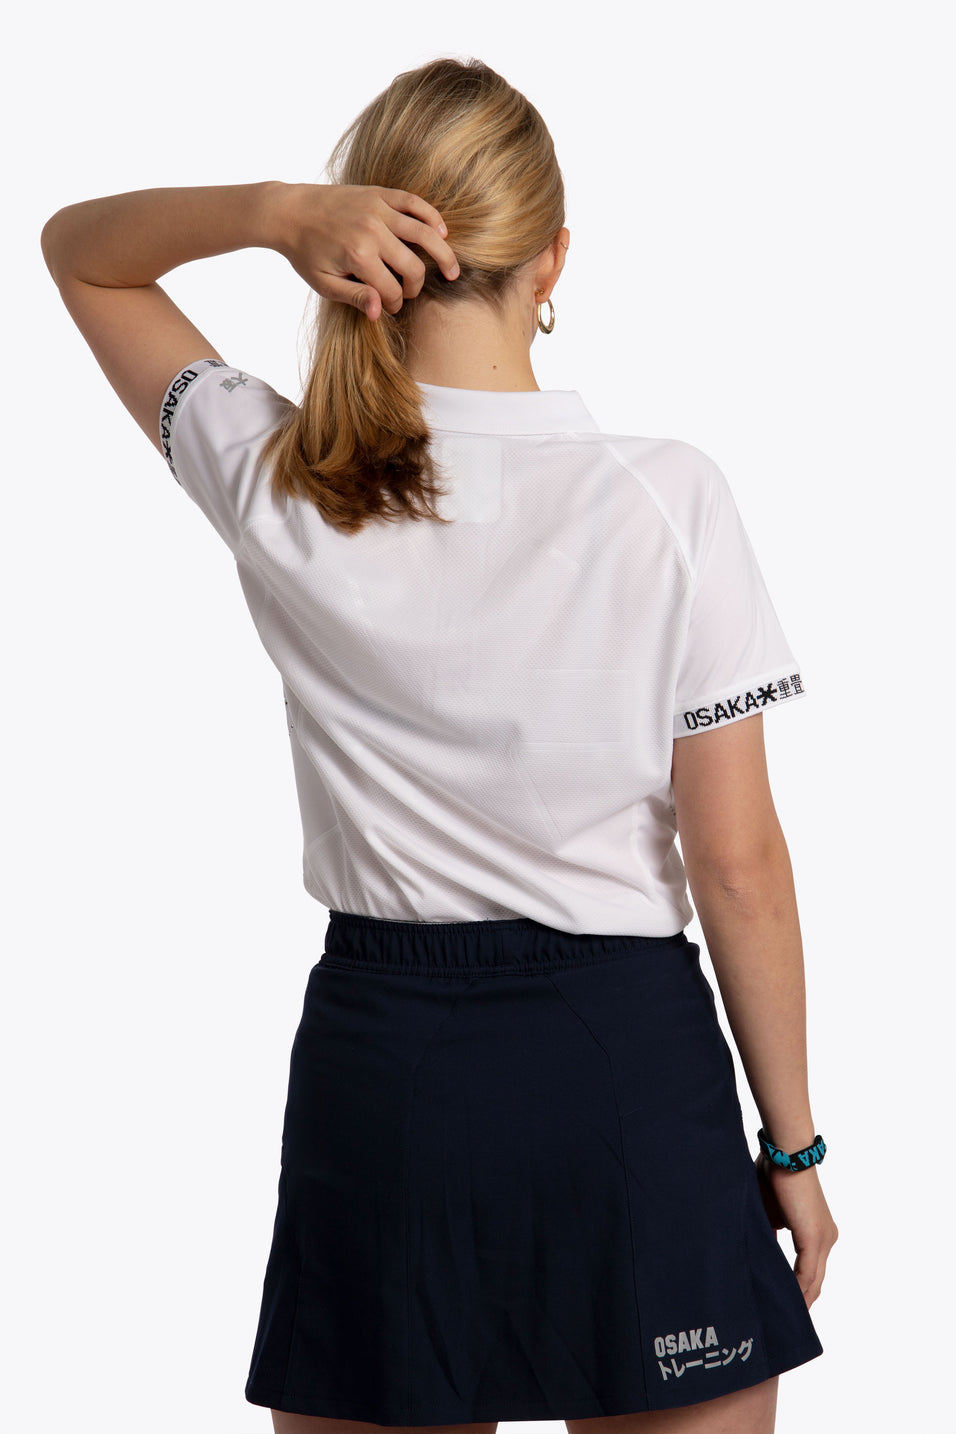 osakahockey polo jersey women